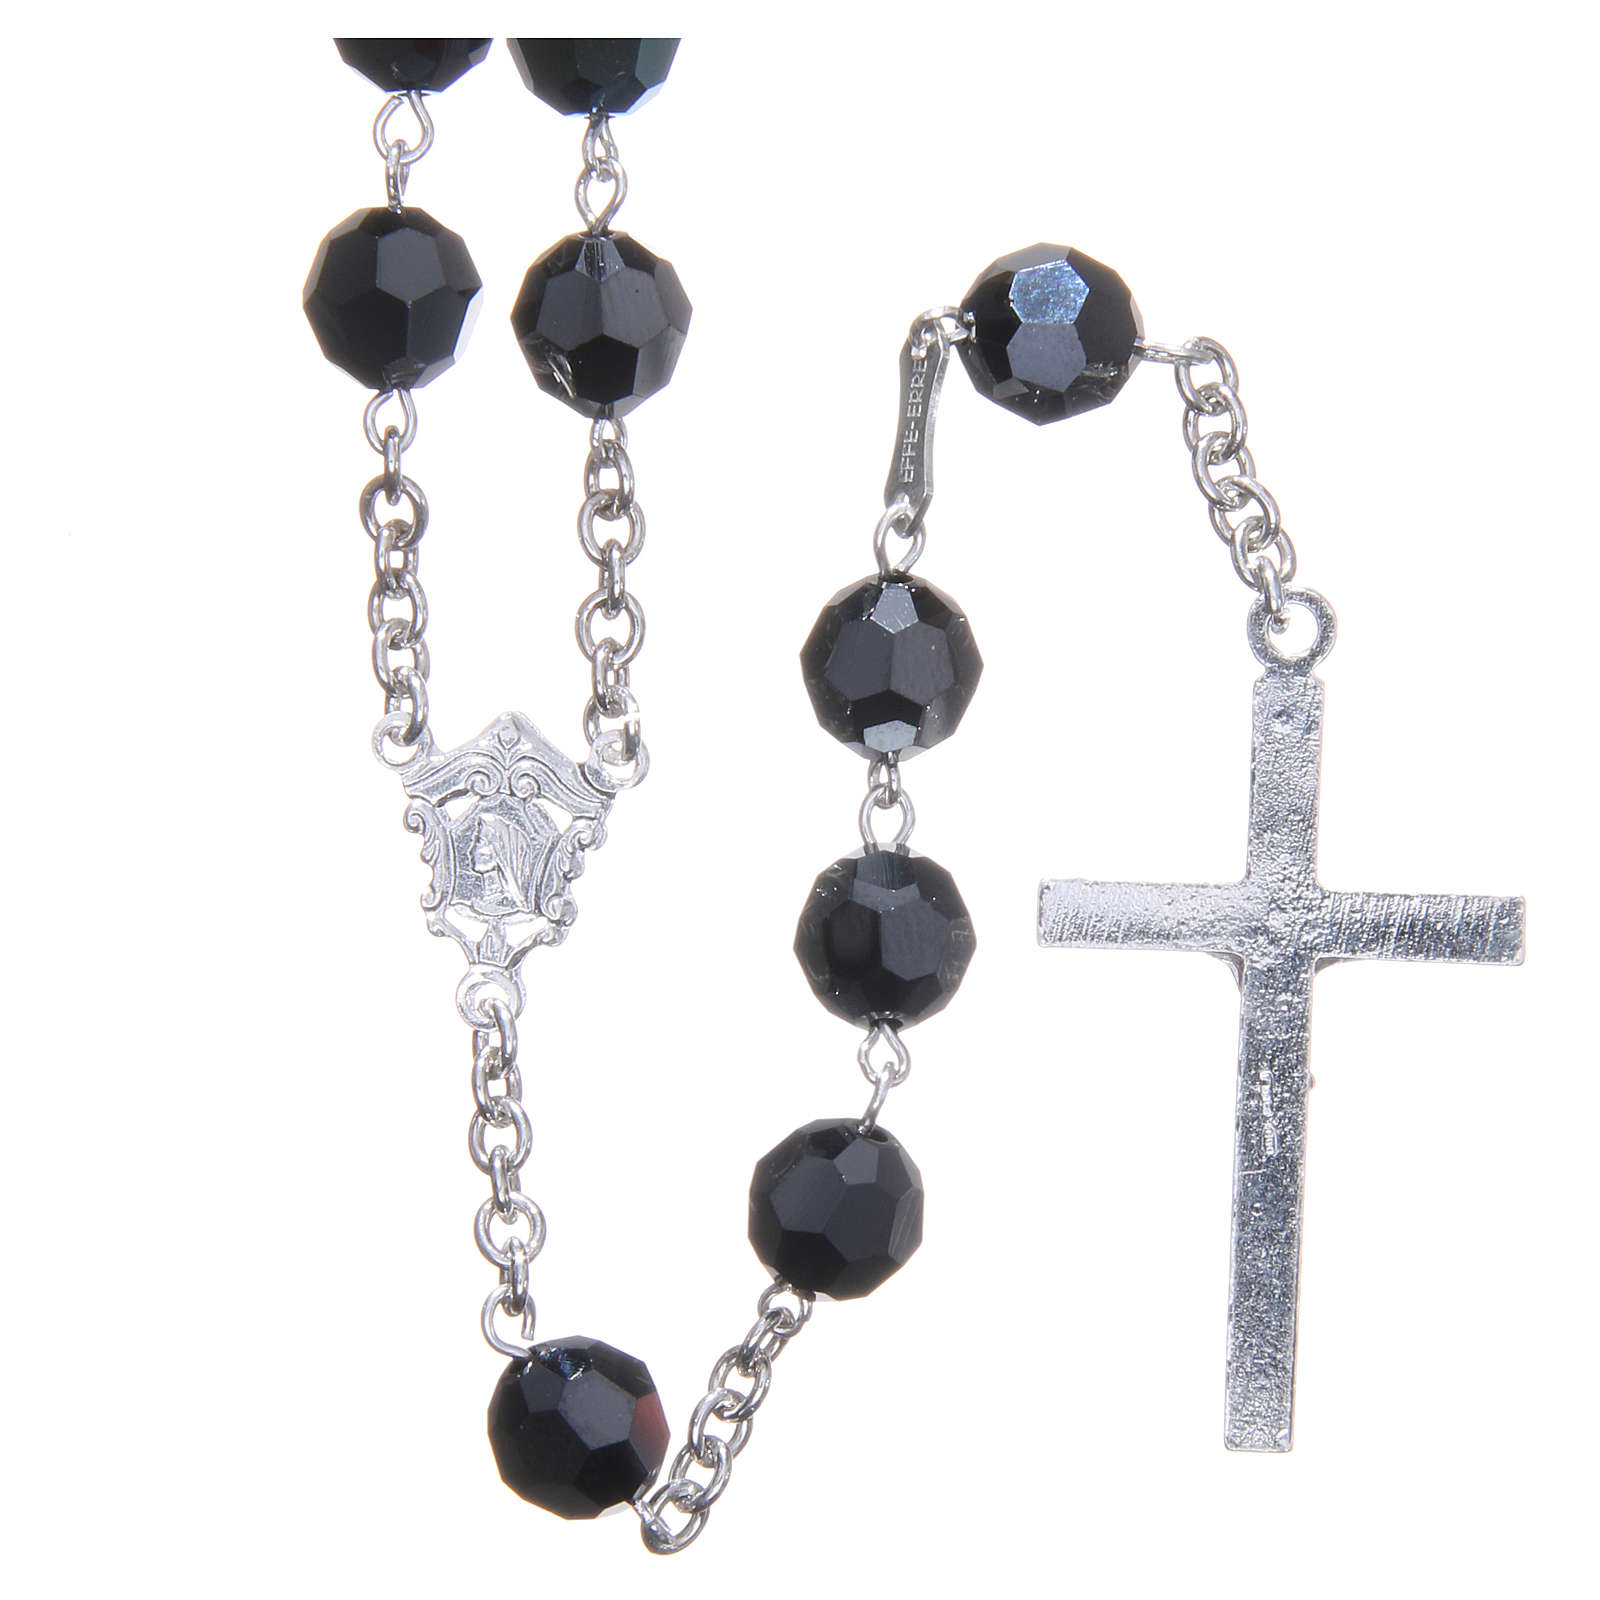 Rosary in 800 silver and black Swarowski crystal grains measuring 8mm 4